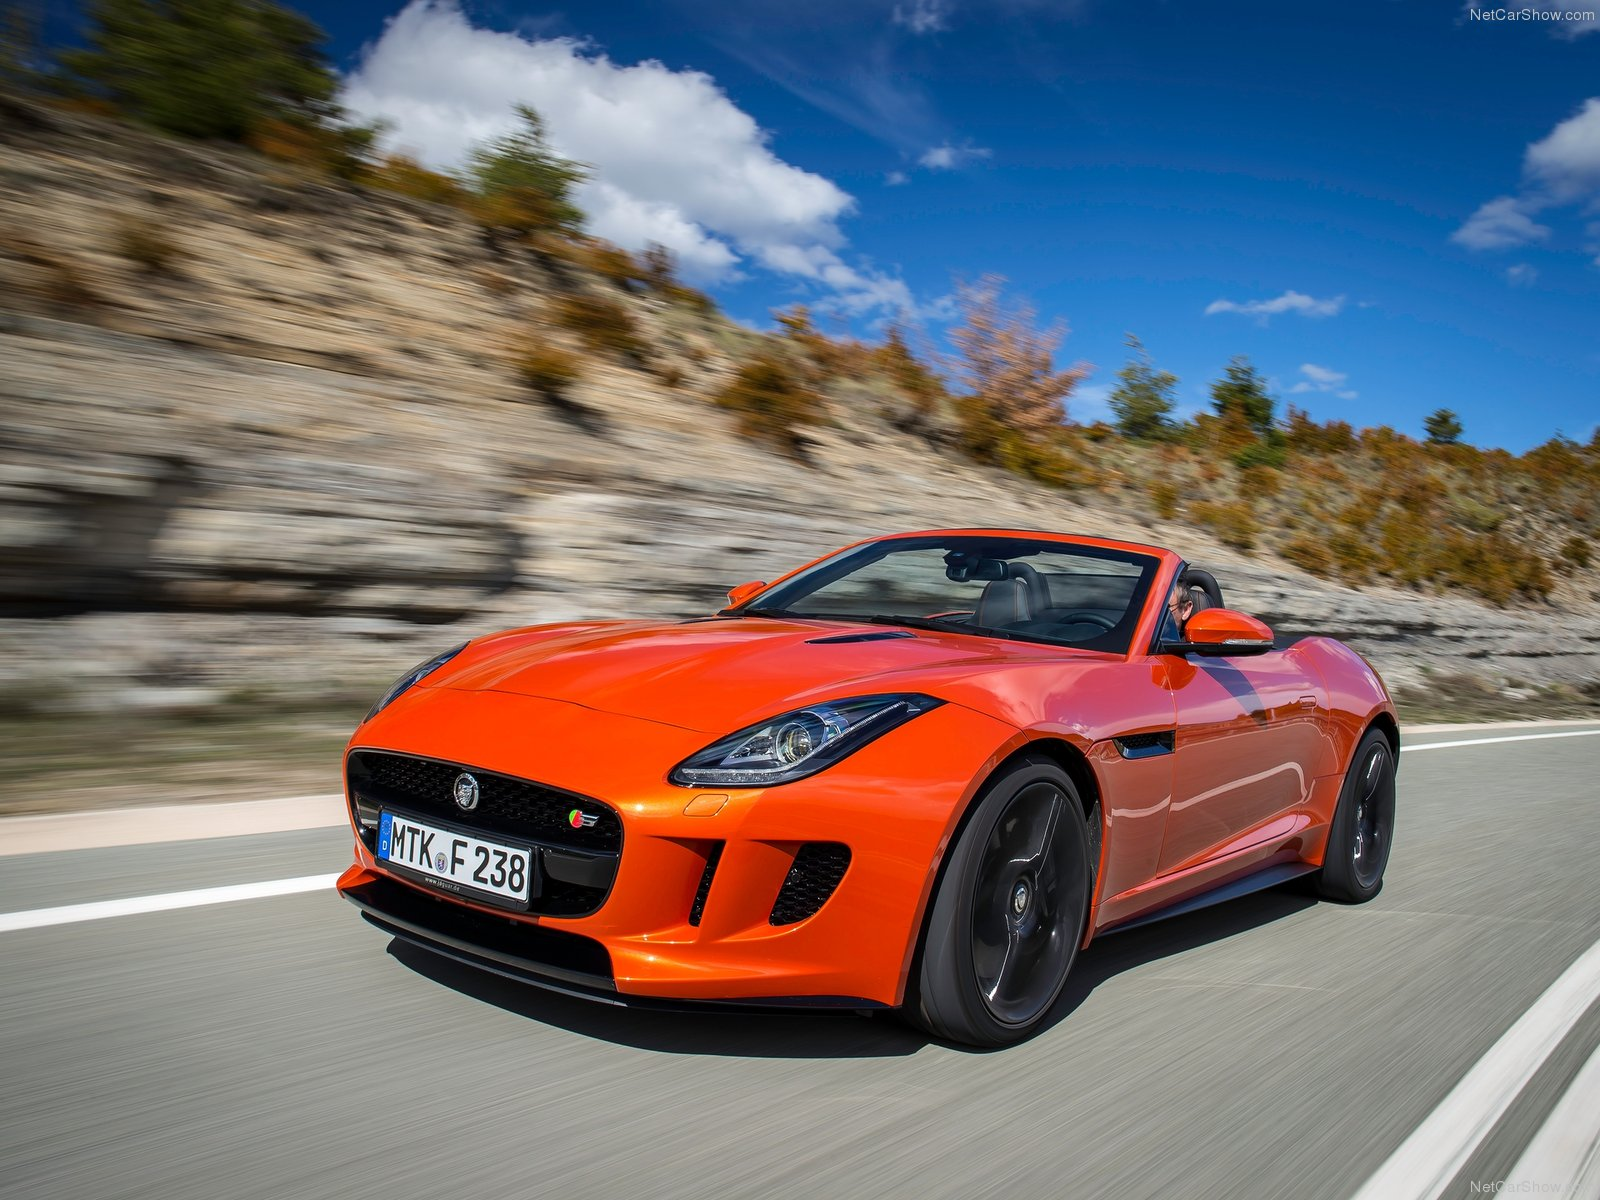 2010 Jaguar F Type V8 S photo - 3